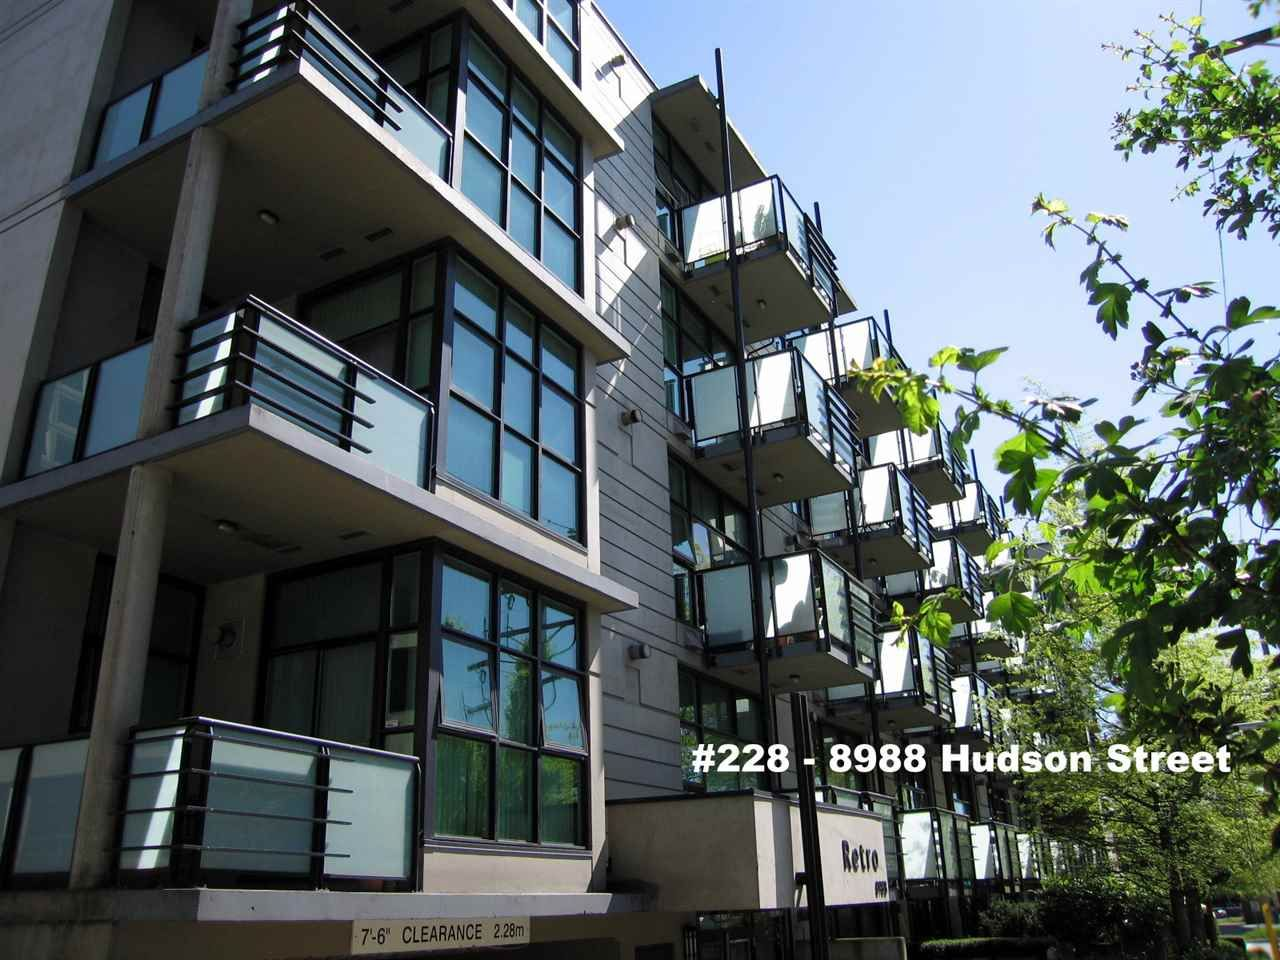 """Main Photo: 228 8988 HUDSON Street in Vancouver: Marpole Condo for sale in """"RETRO LOFTS"""" (Vancouver West)  : MLS®# R2061746"""